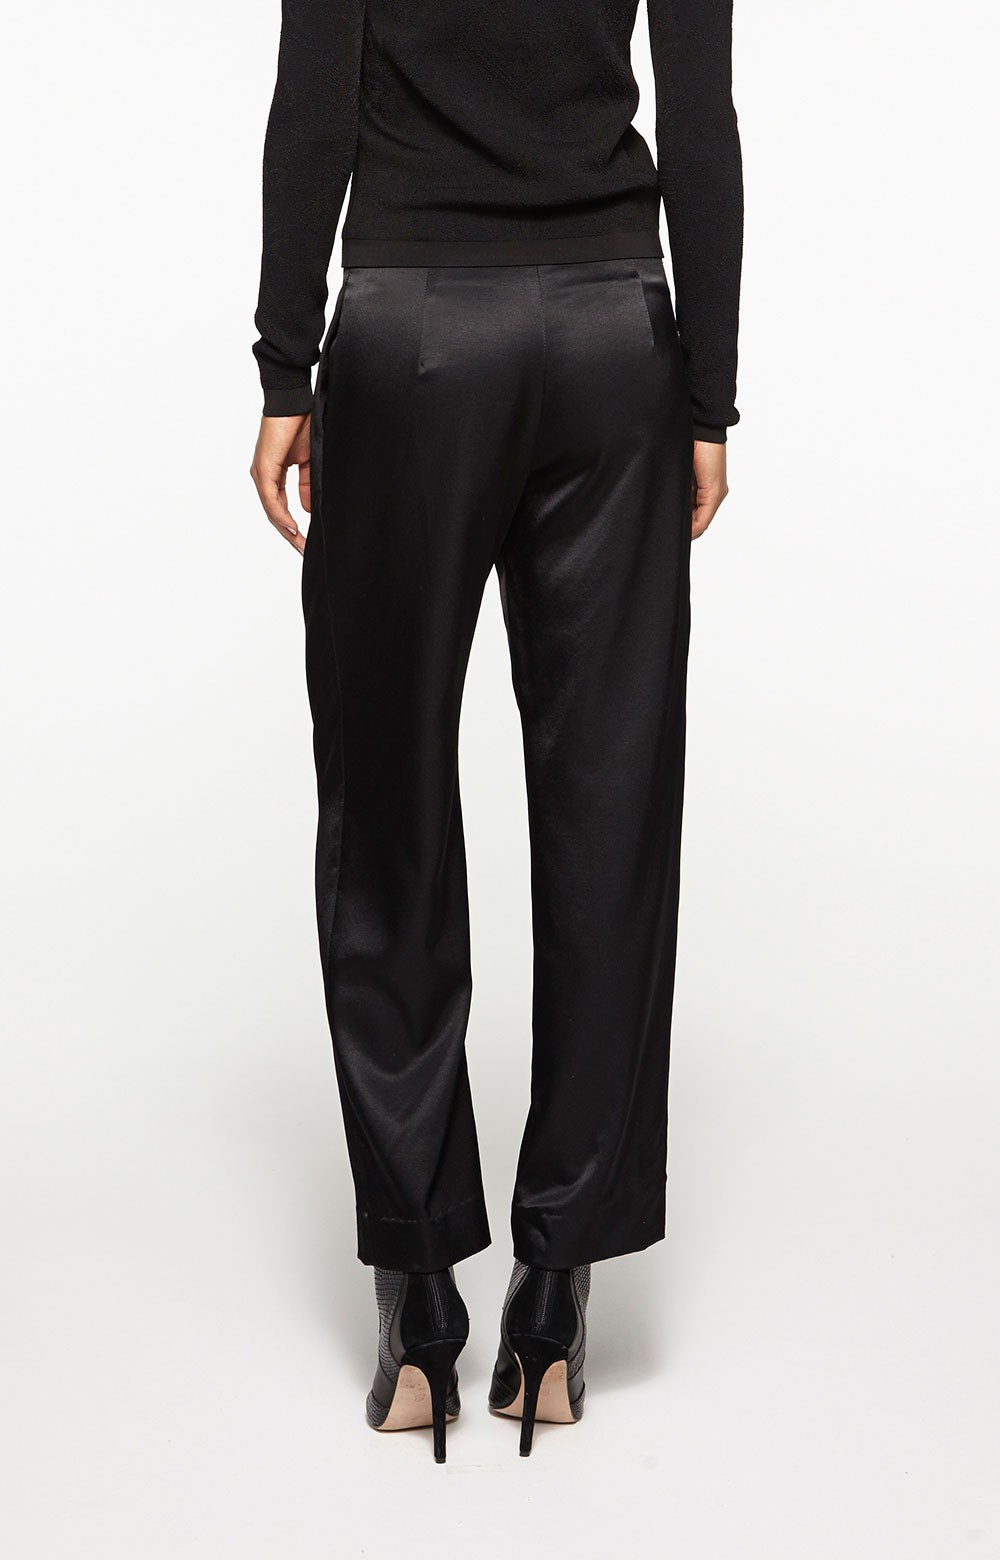 Lyst - Nicole Miller Cropped Satin Trousers in Black adc67f318f5e8